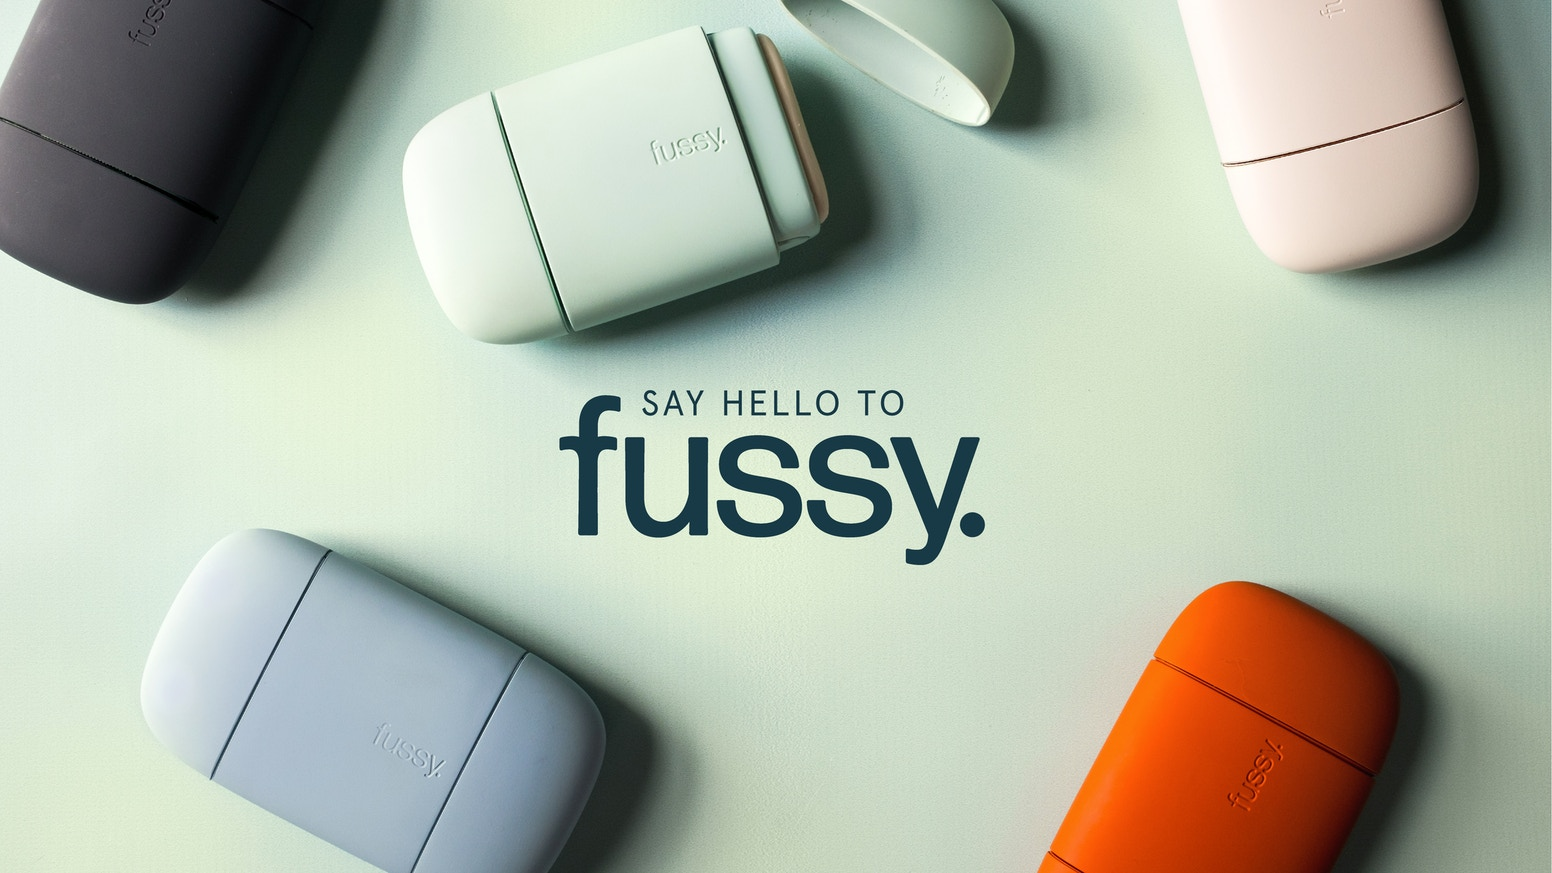 Please your pits and the planet. fussy is the refillable deodorant turning the tide on single-use plastic. Our journey continues on Indiegogo, pre-order now!